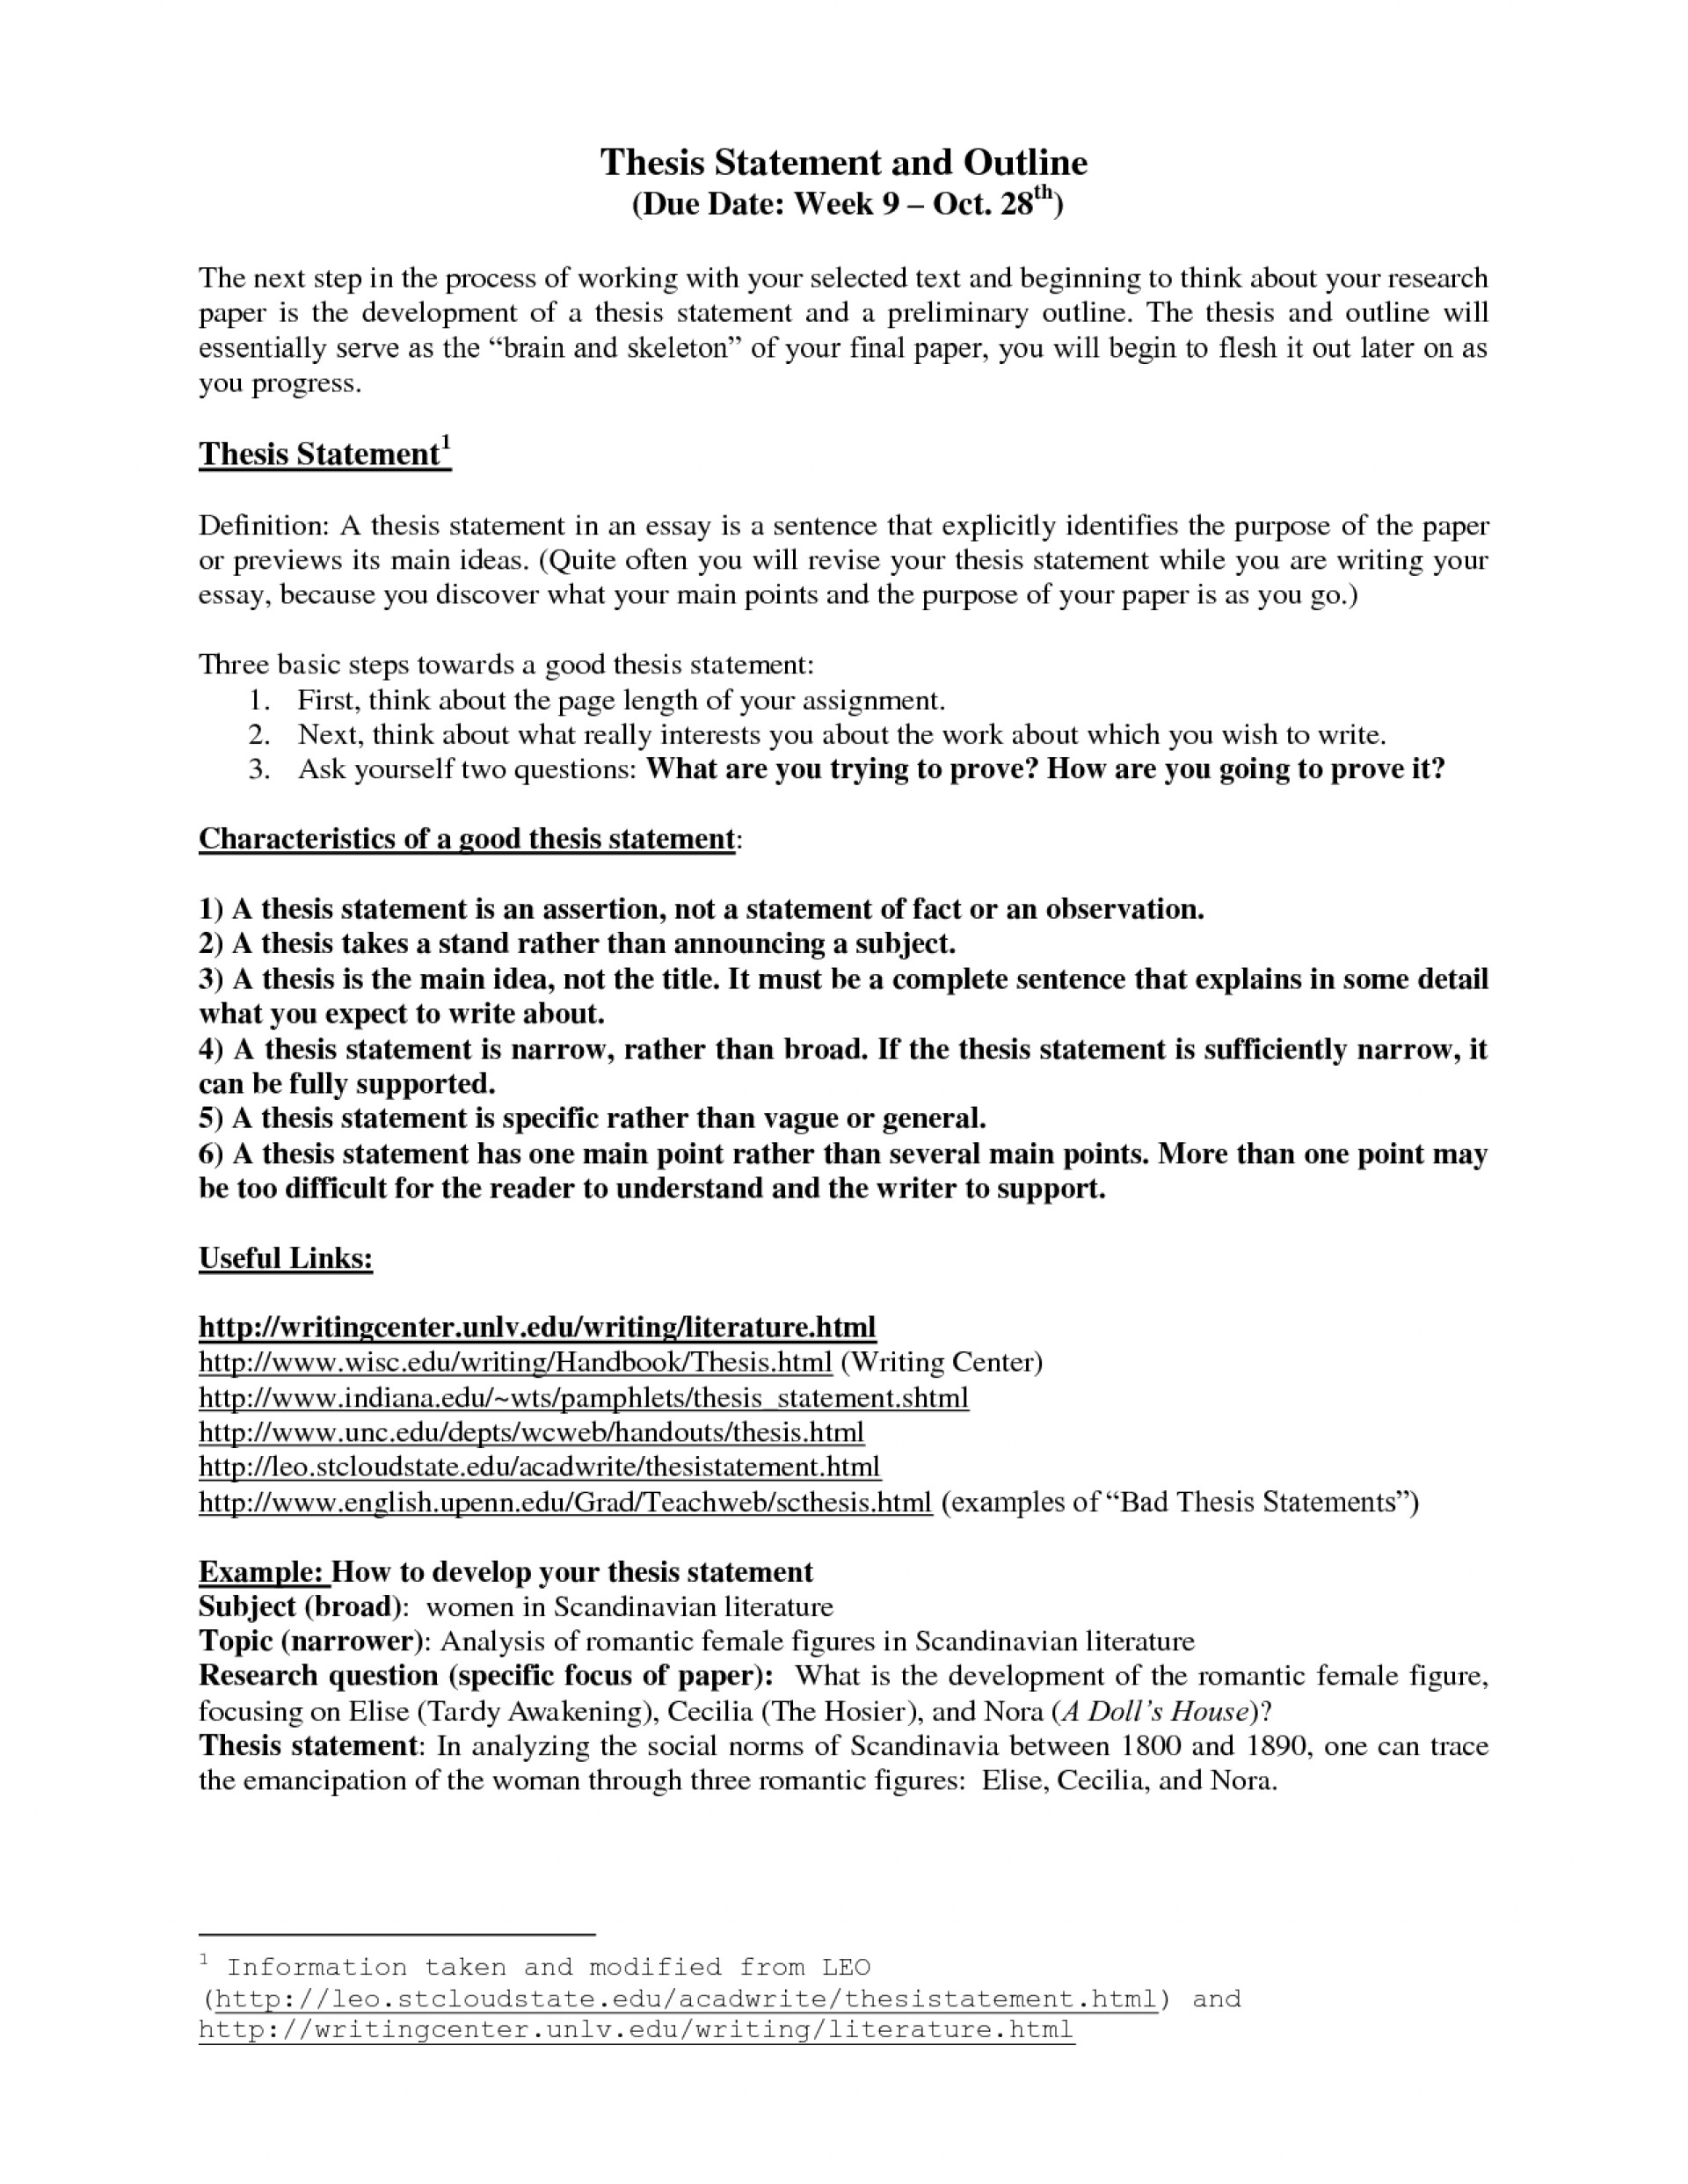 008 Research Paper Thesis Statement And Outline Template Wx8nmdez Example Ap Remarkable Papers 1920